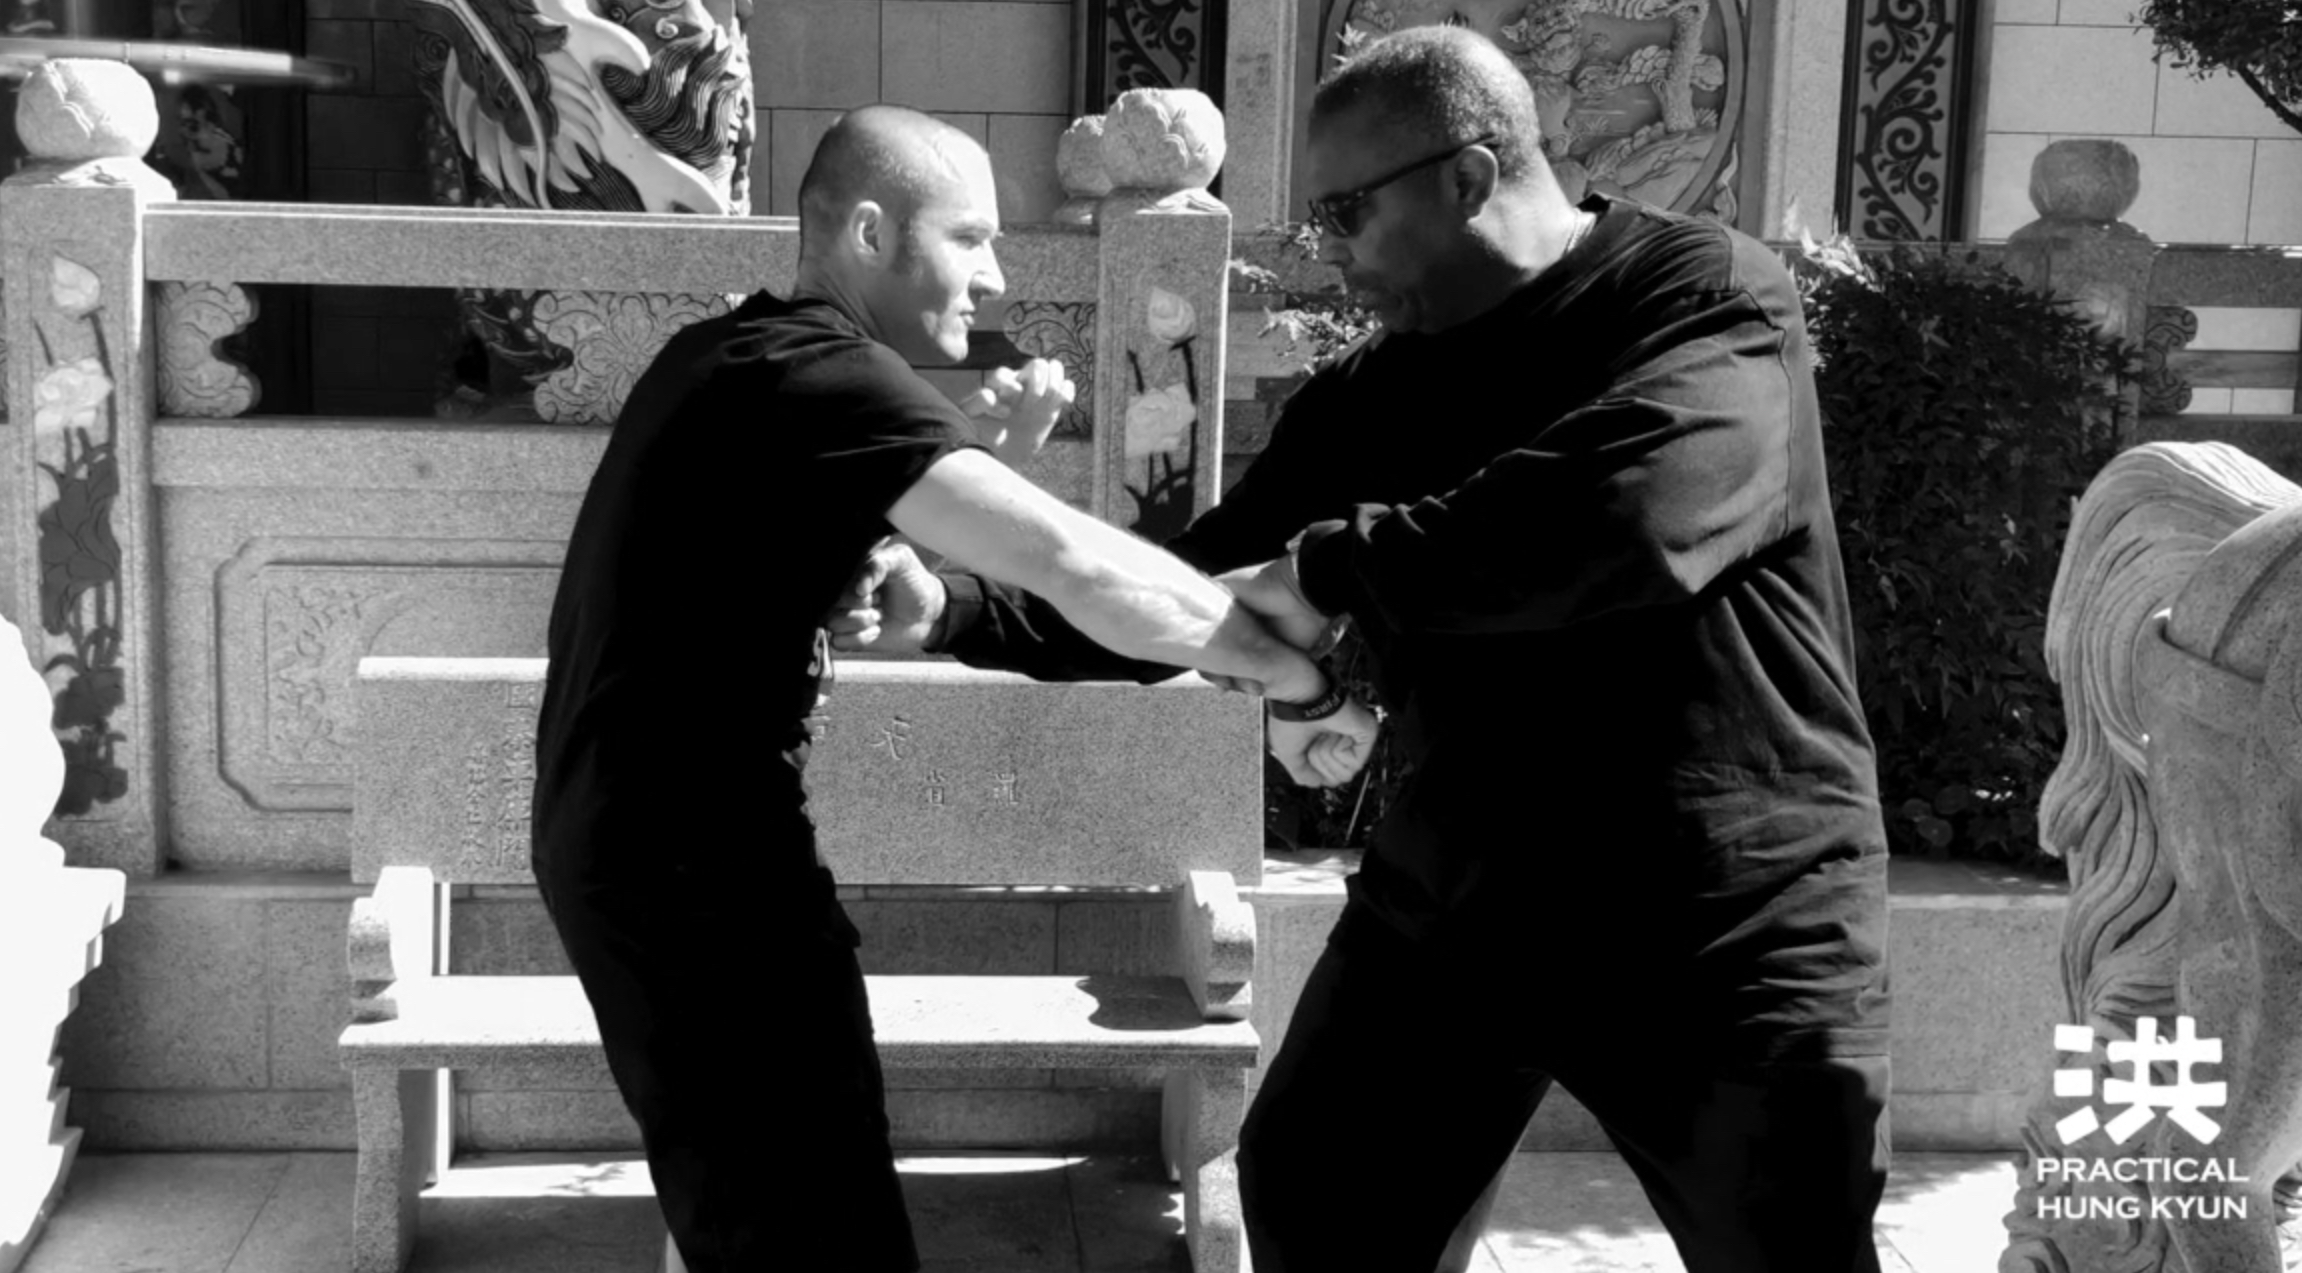 Interview with Donald Hamby Sifu, Tiger Crane School Los Angeles